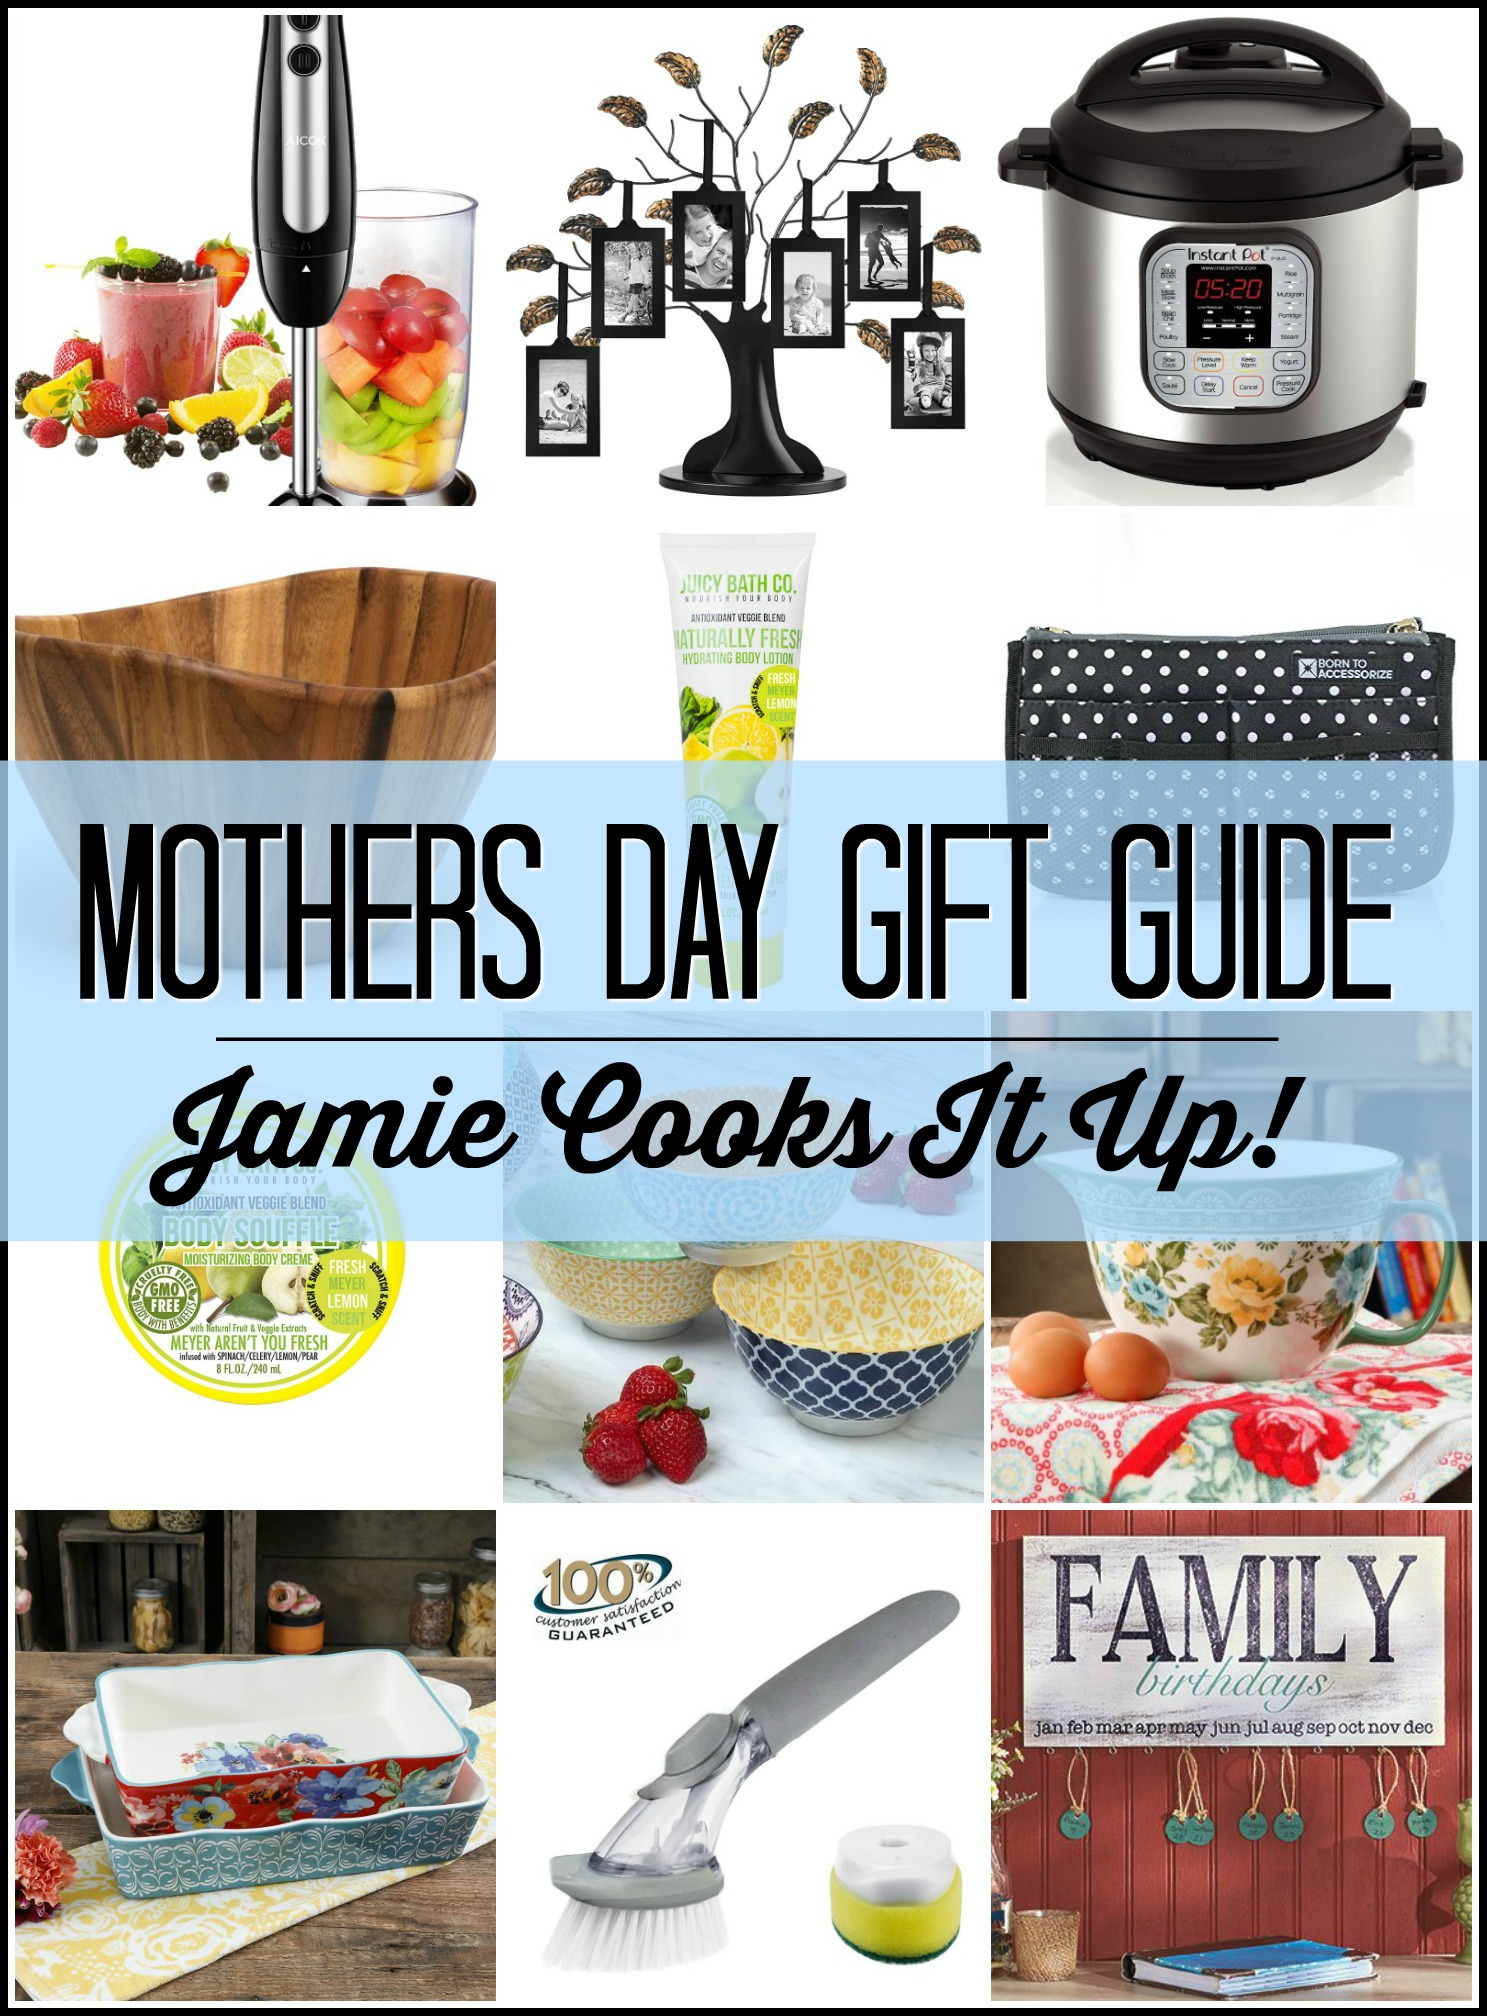 Instant Pot Giveaway and Mother's Day Gift Guide (Favorite Things)